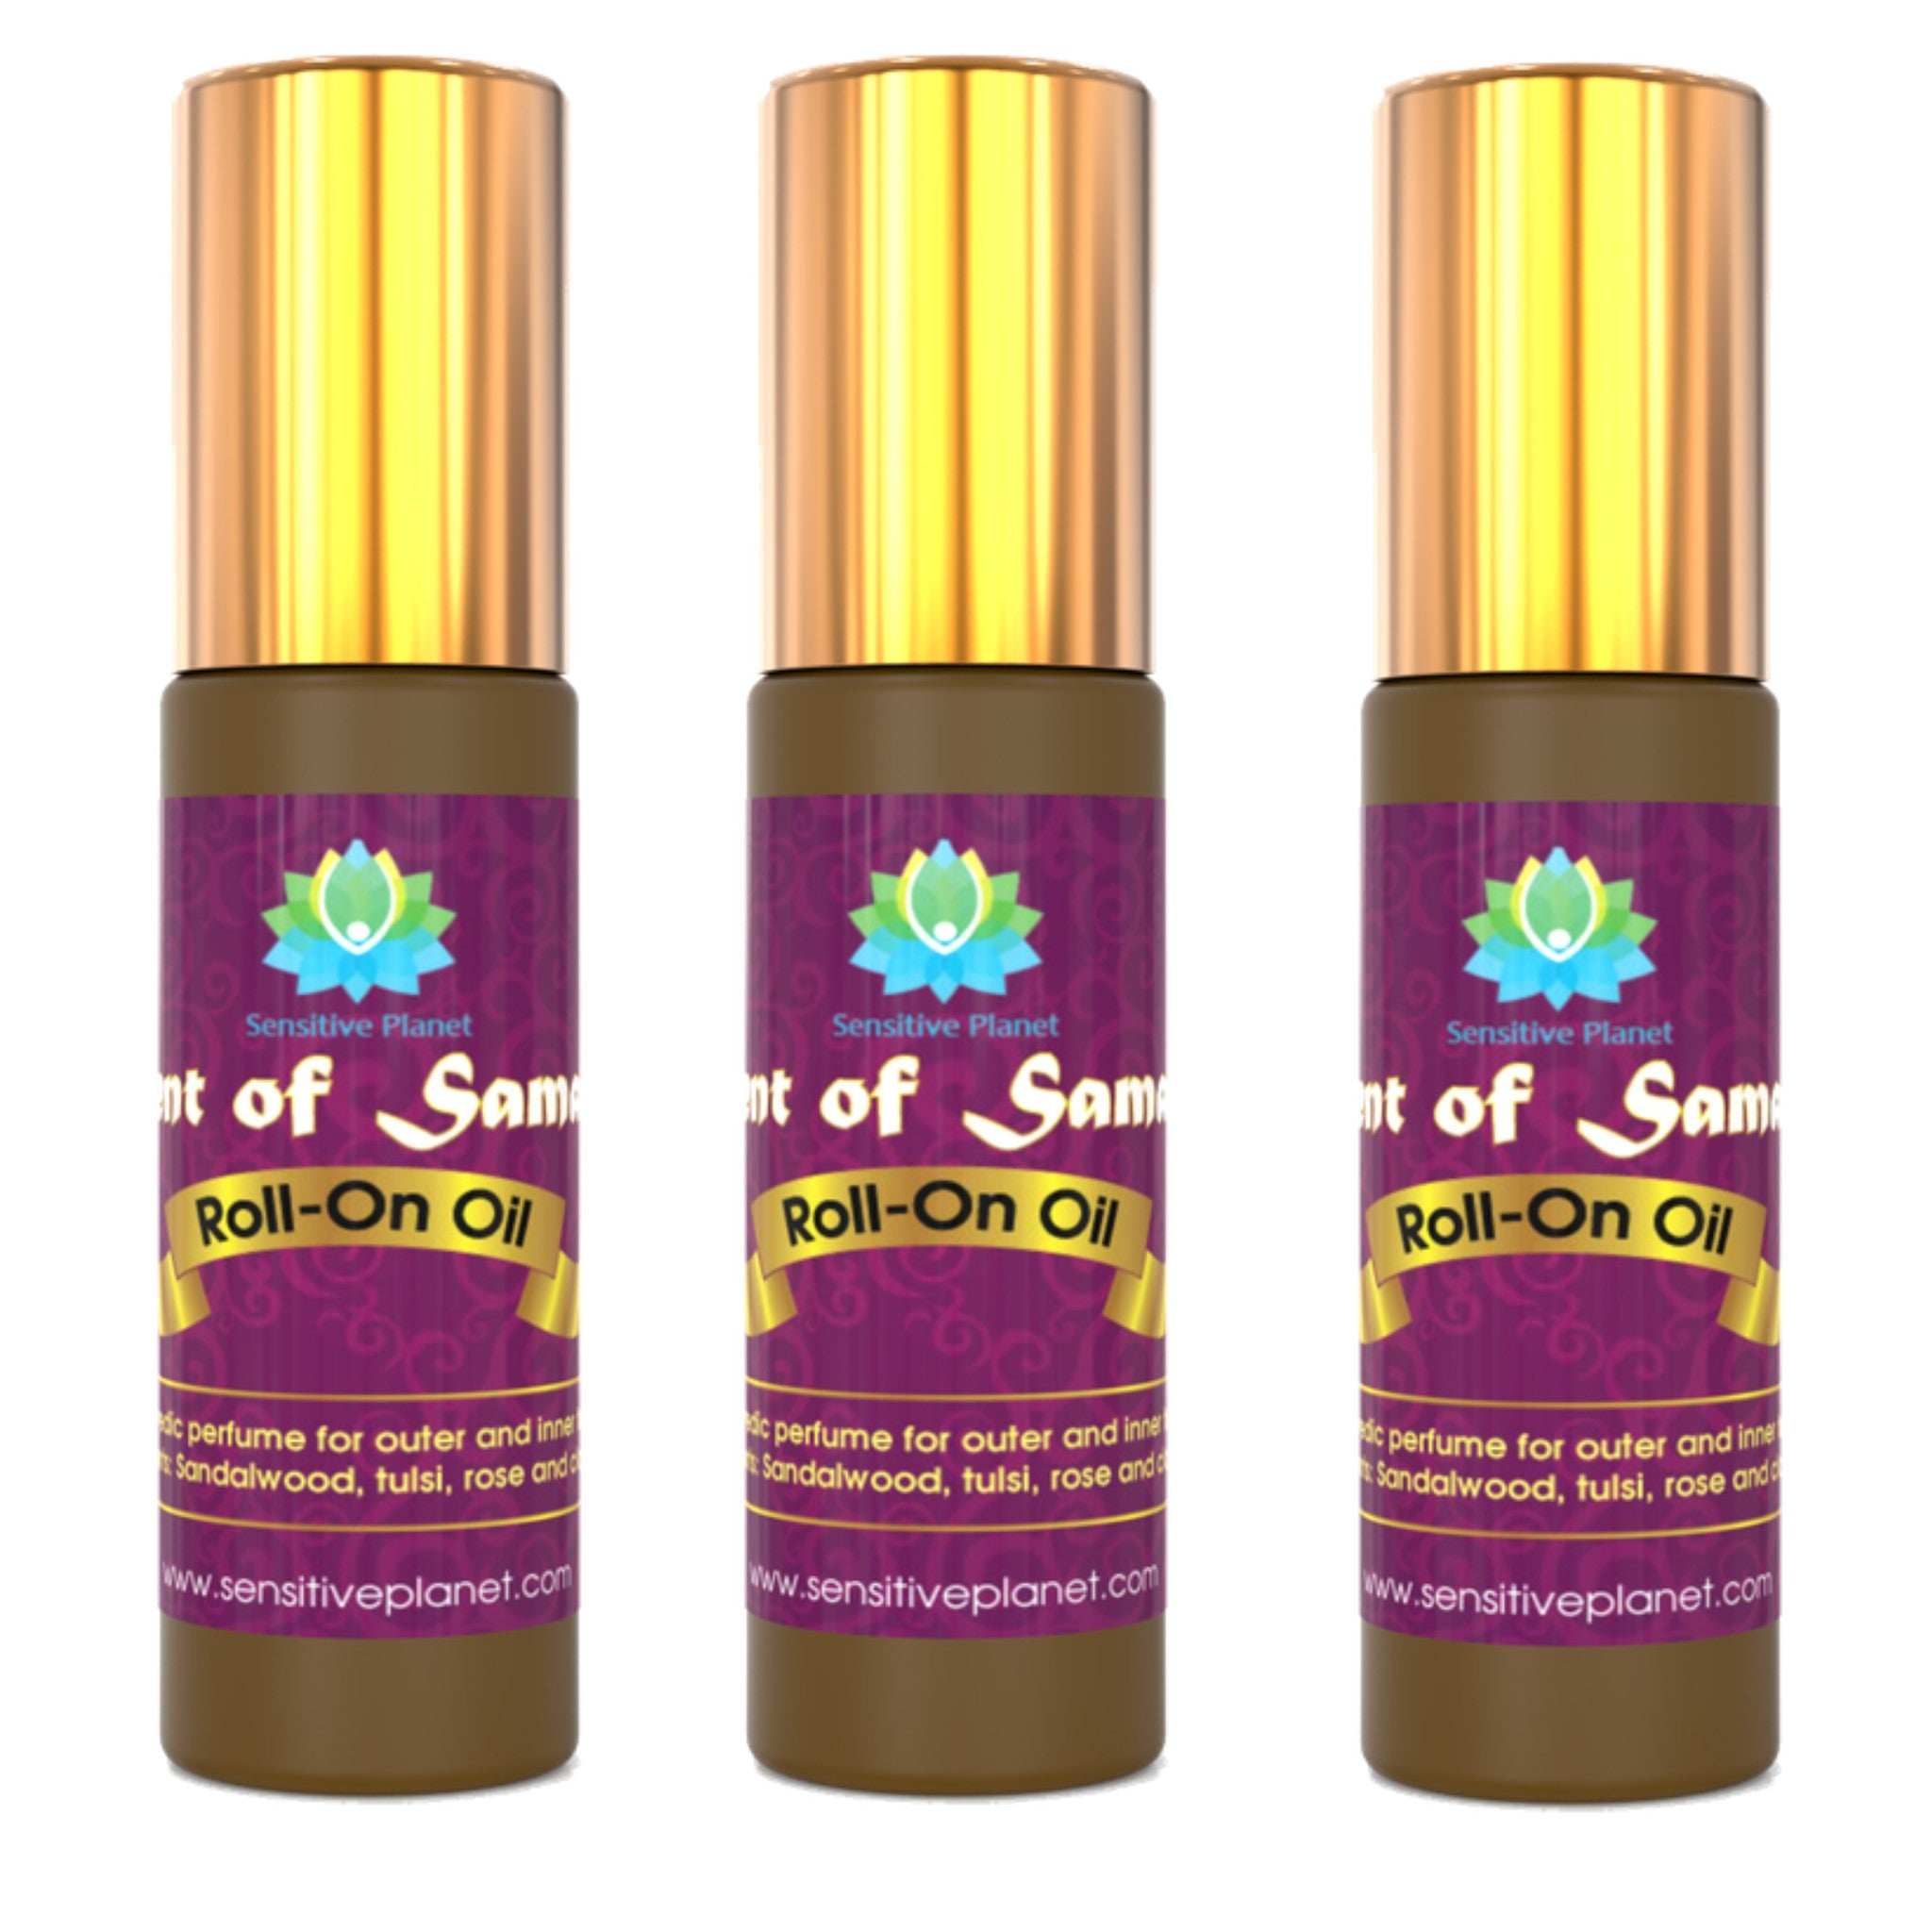 scent of samadhi roll-on oil